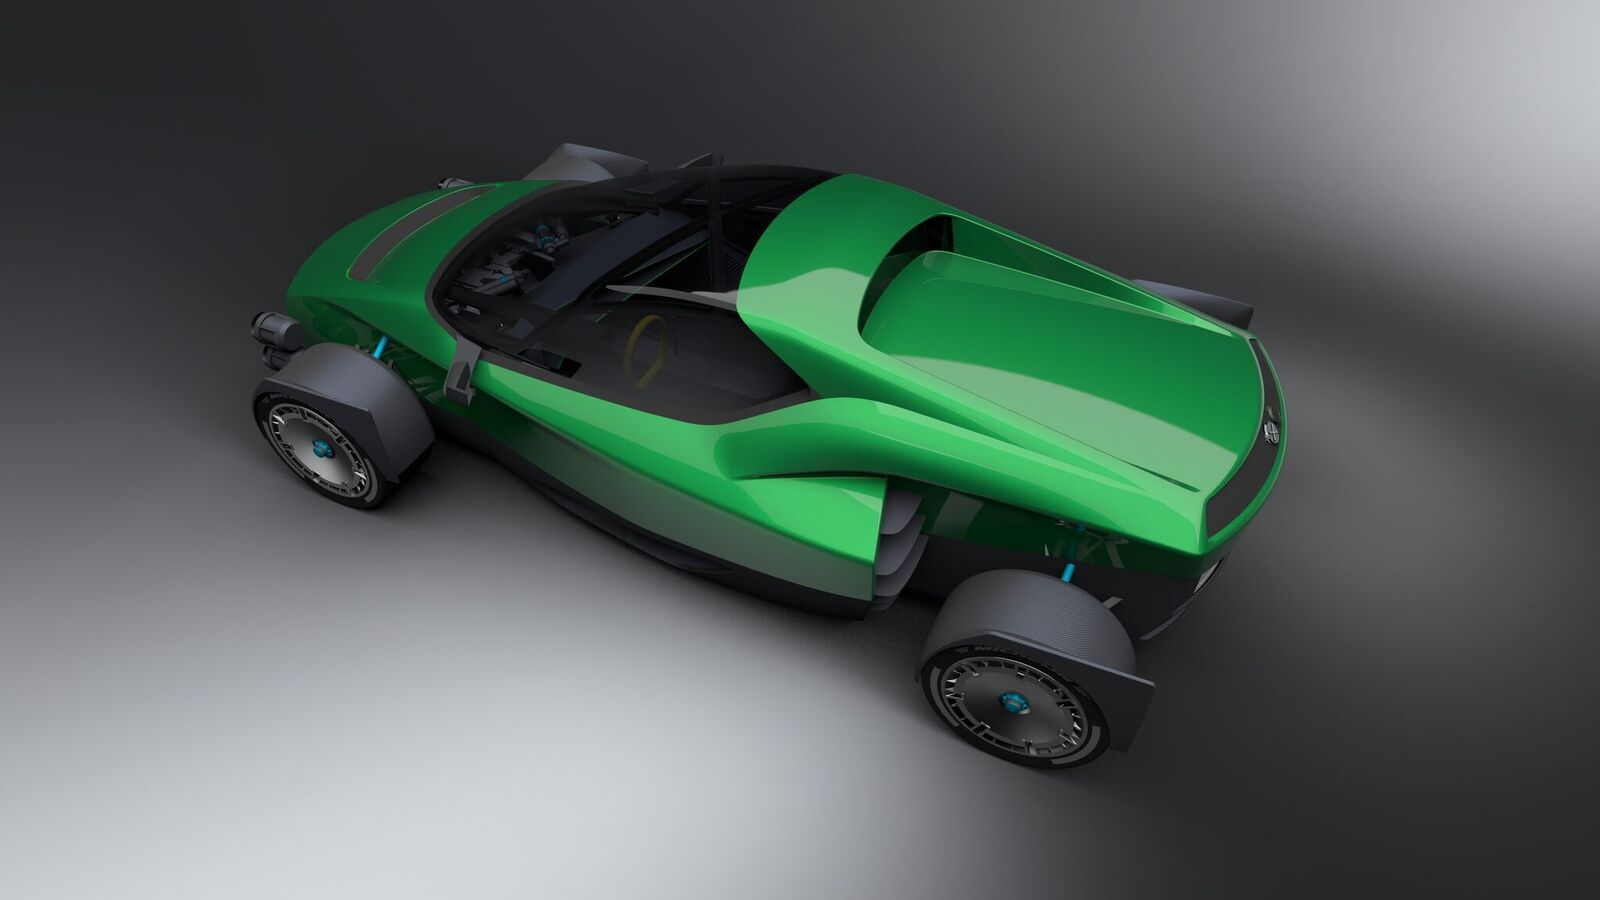 The-Electric-Supercar-XING-Mobility-1